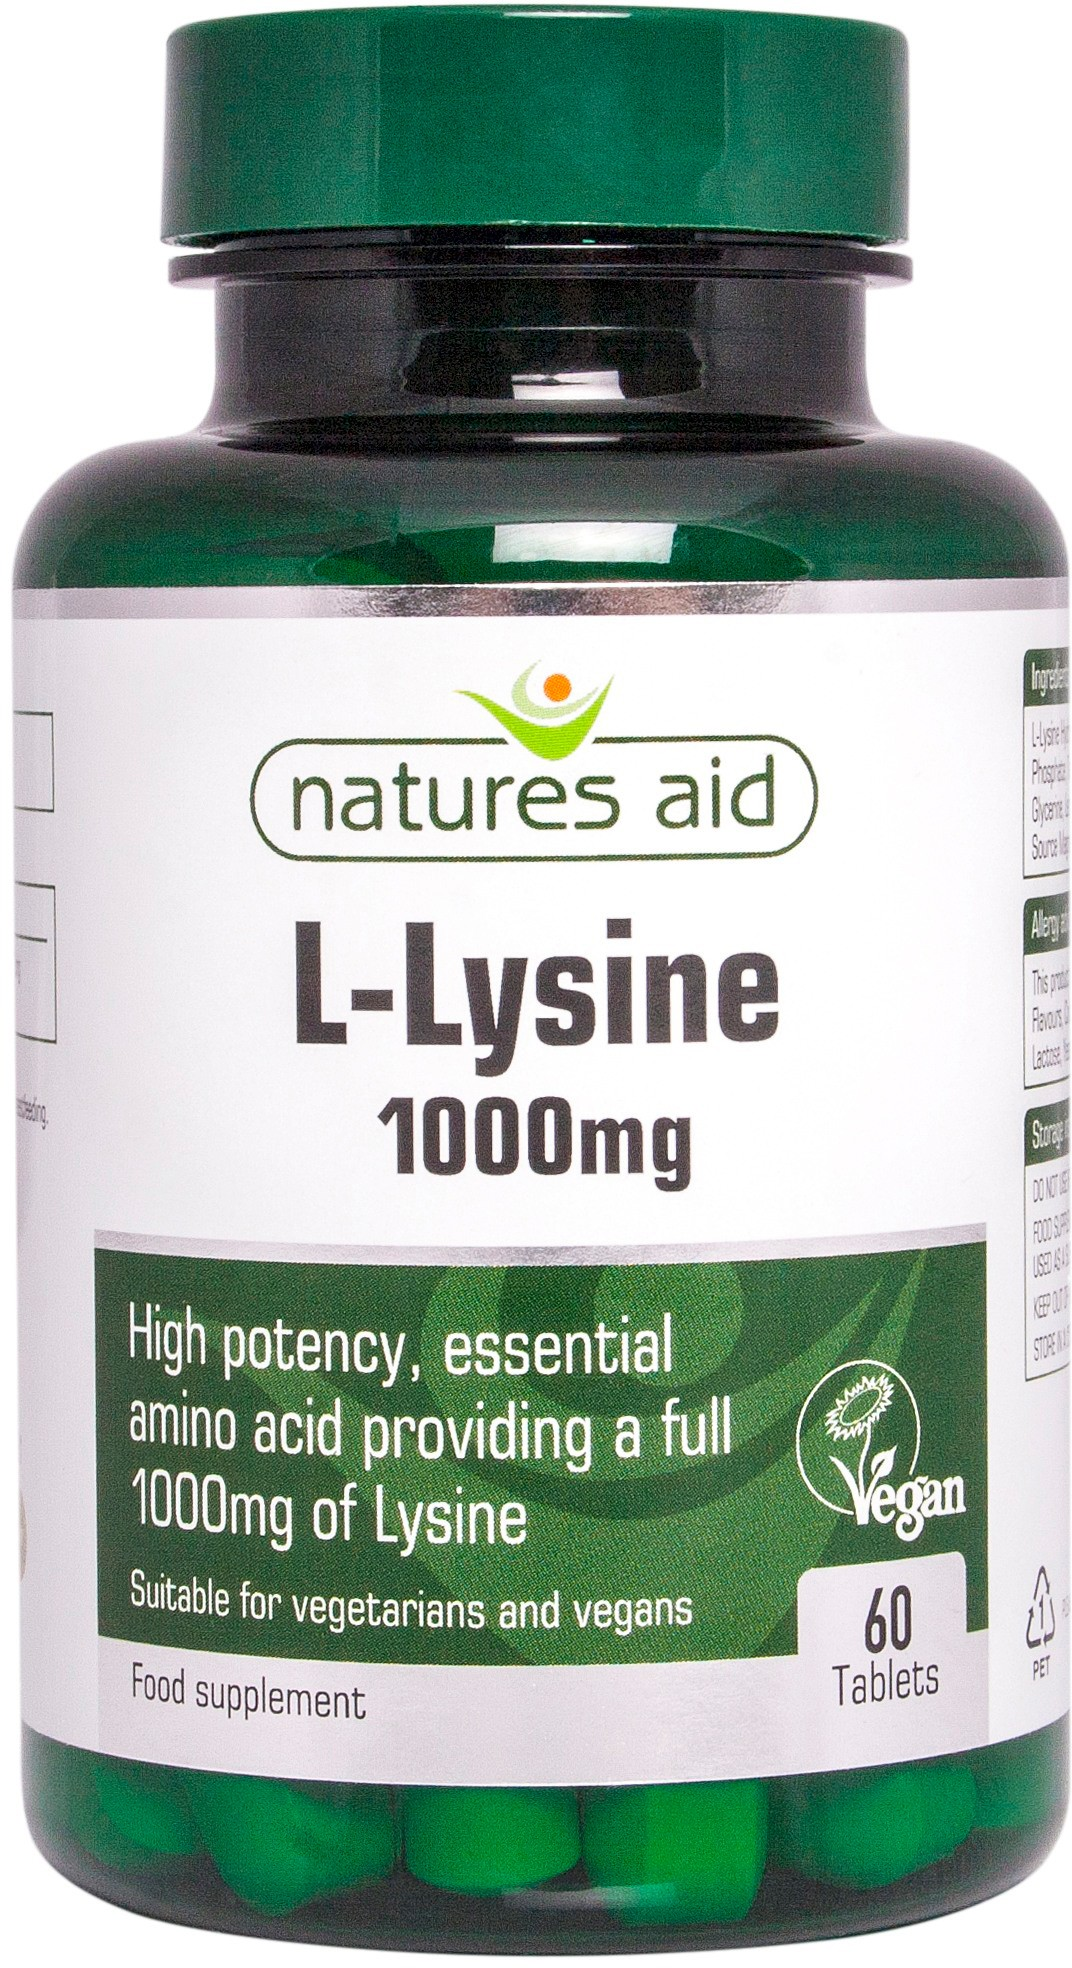 Natures Aid L-Lysine 1000mg, 60 tablets